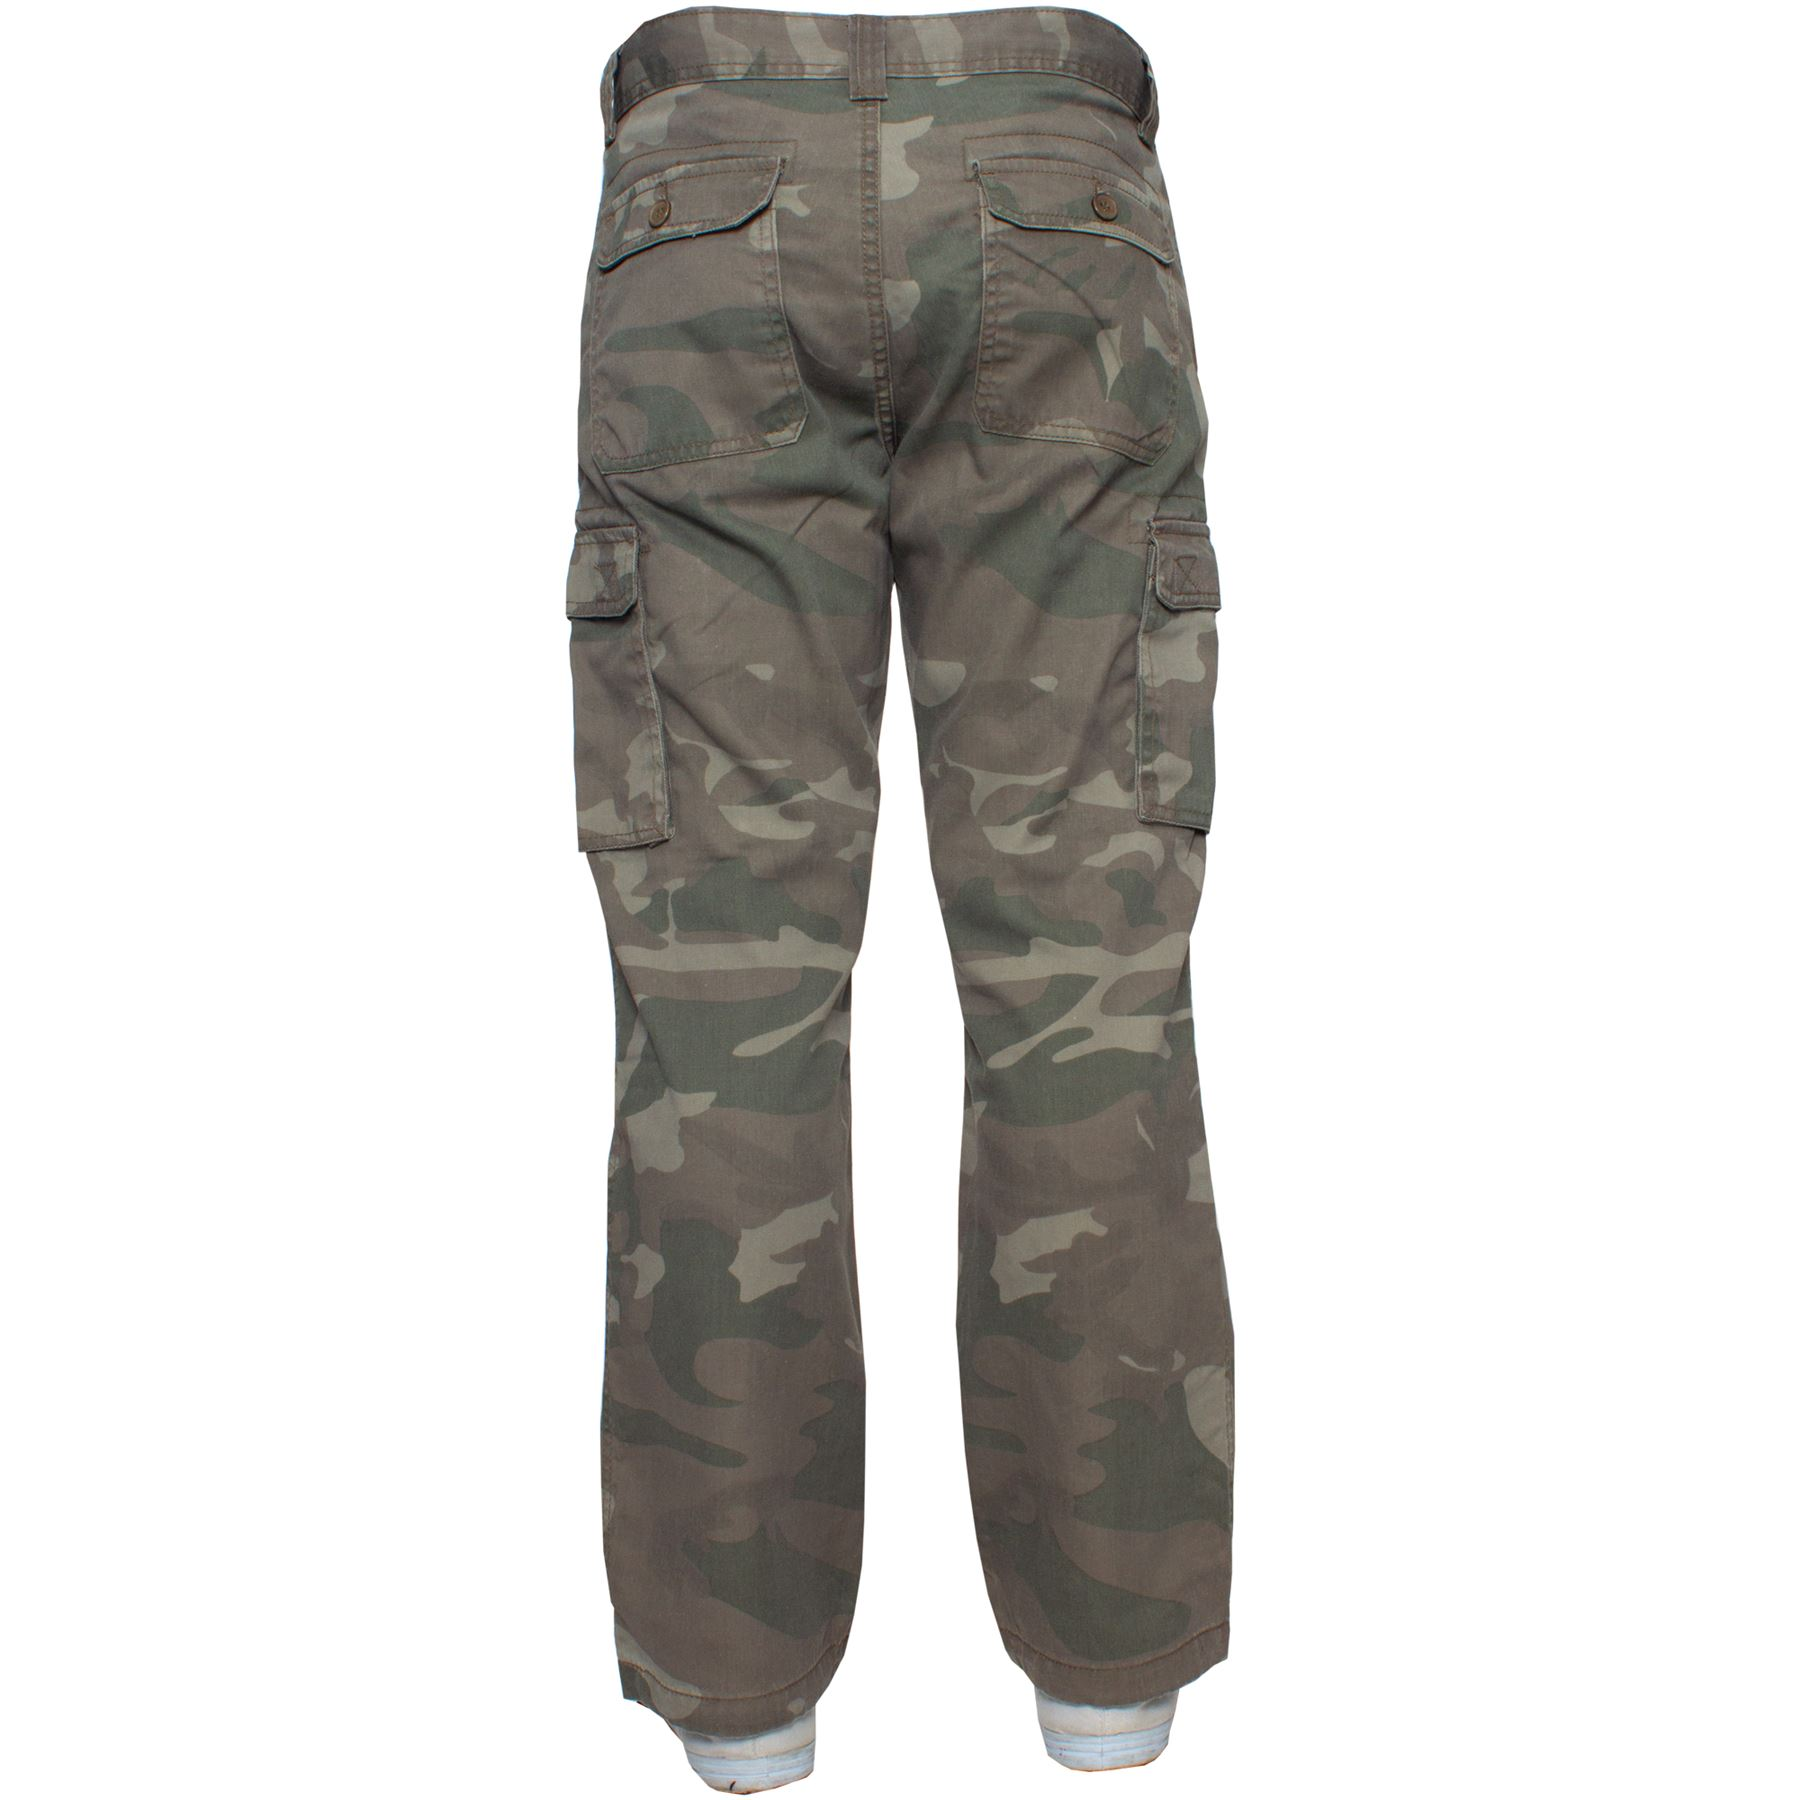 Kruze-Mens-Military-Combat-Trousers-Camouflage-Cargo-Camo-Army-Casual-Work-Pants miniatura 29